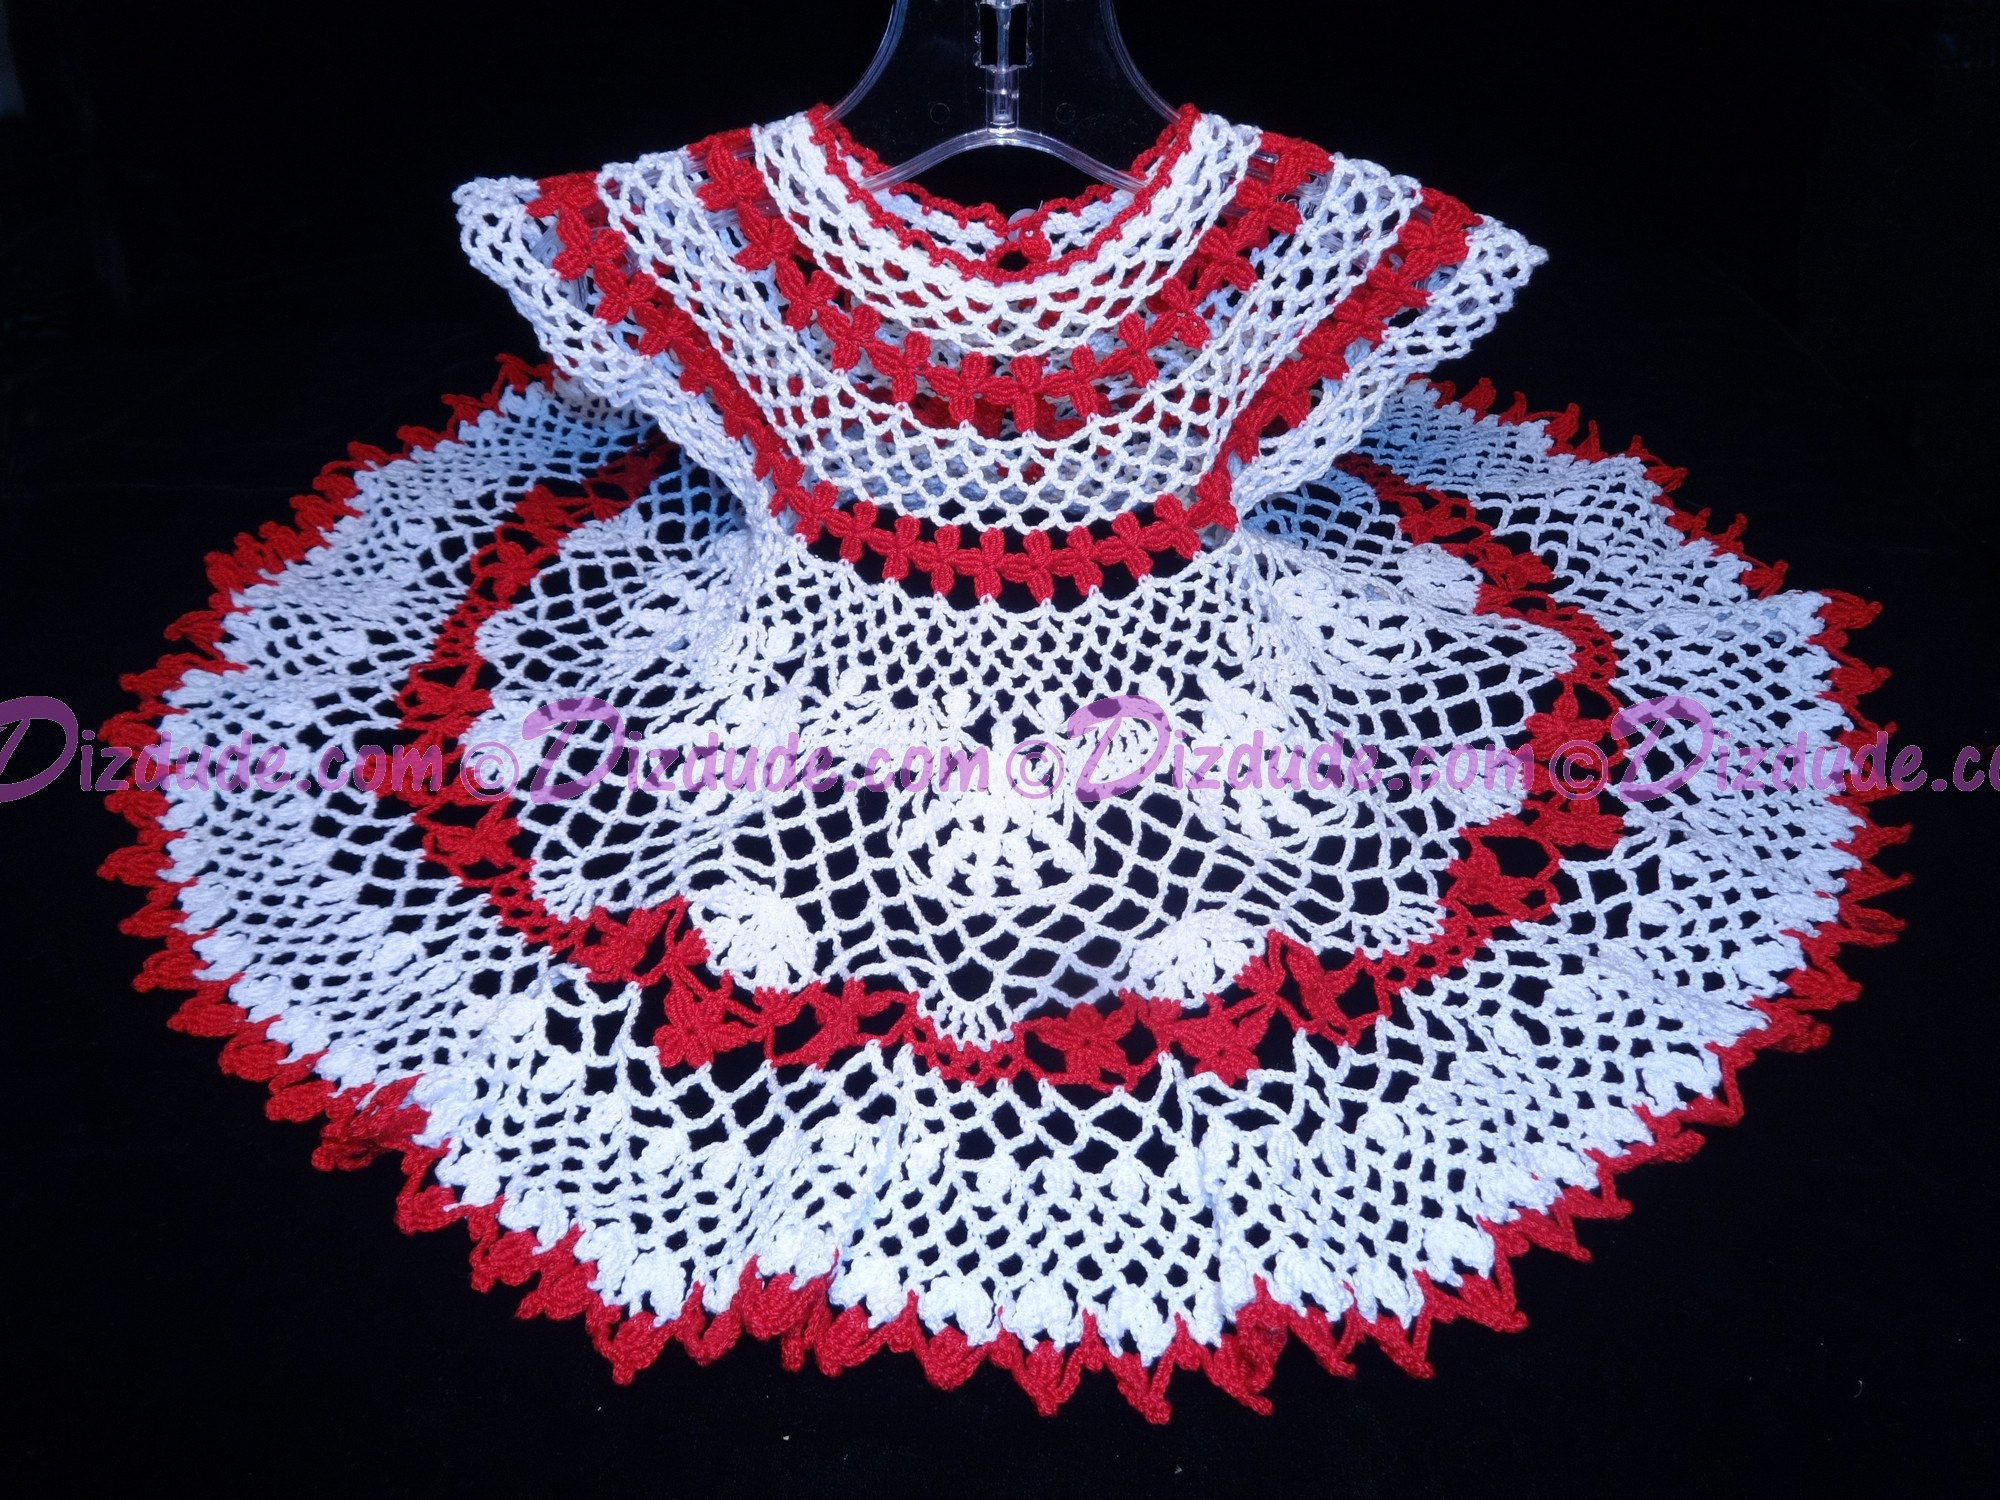 Hand Made Crocheted Lace Baby Dress for Newborn 0-3 months - Christmas, Baptism or Christening - White and Red